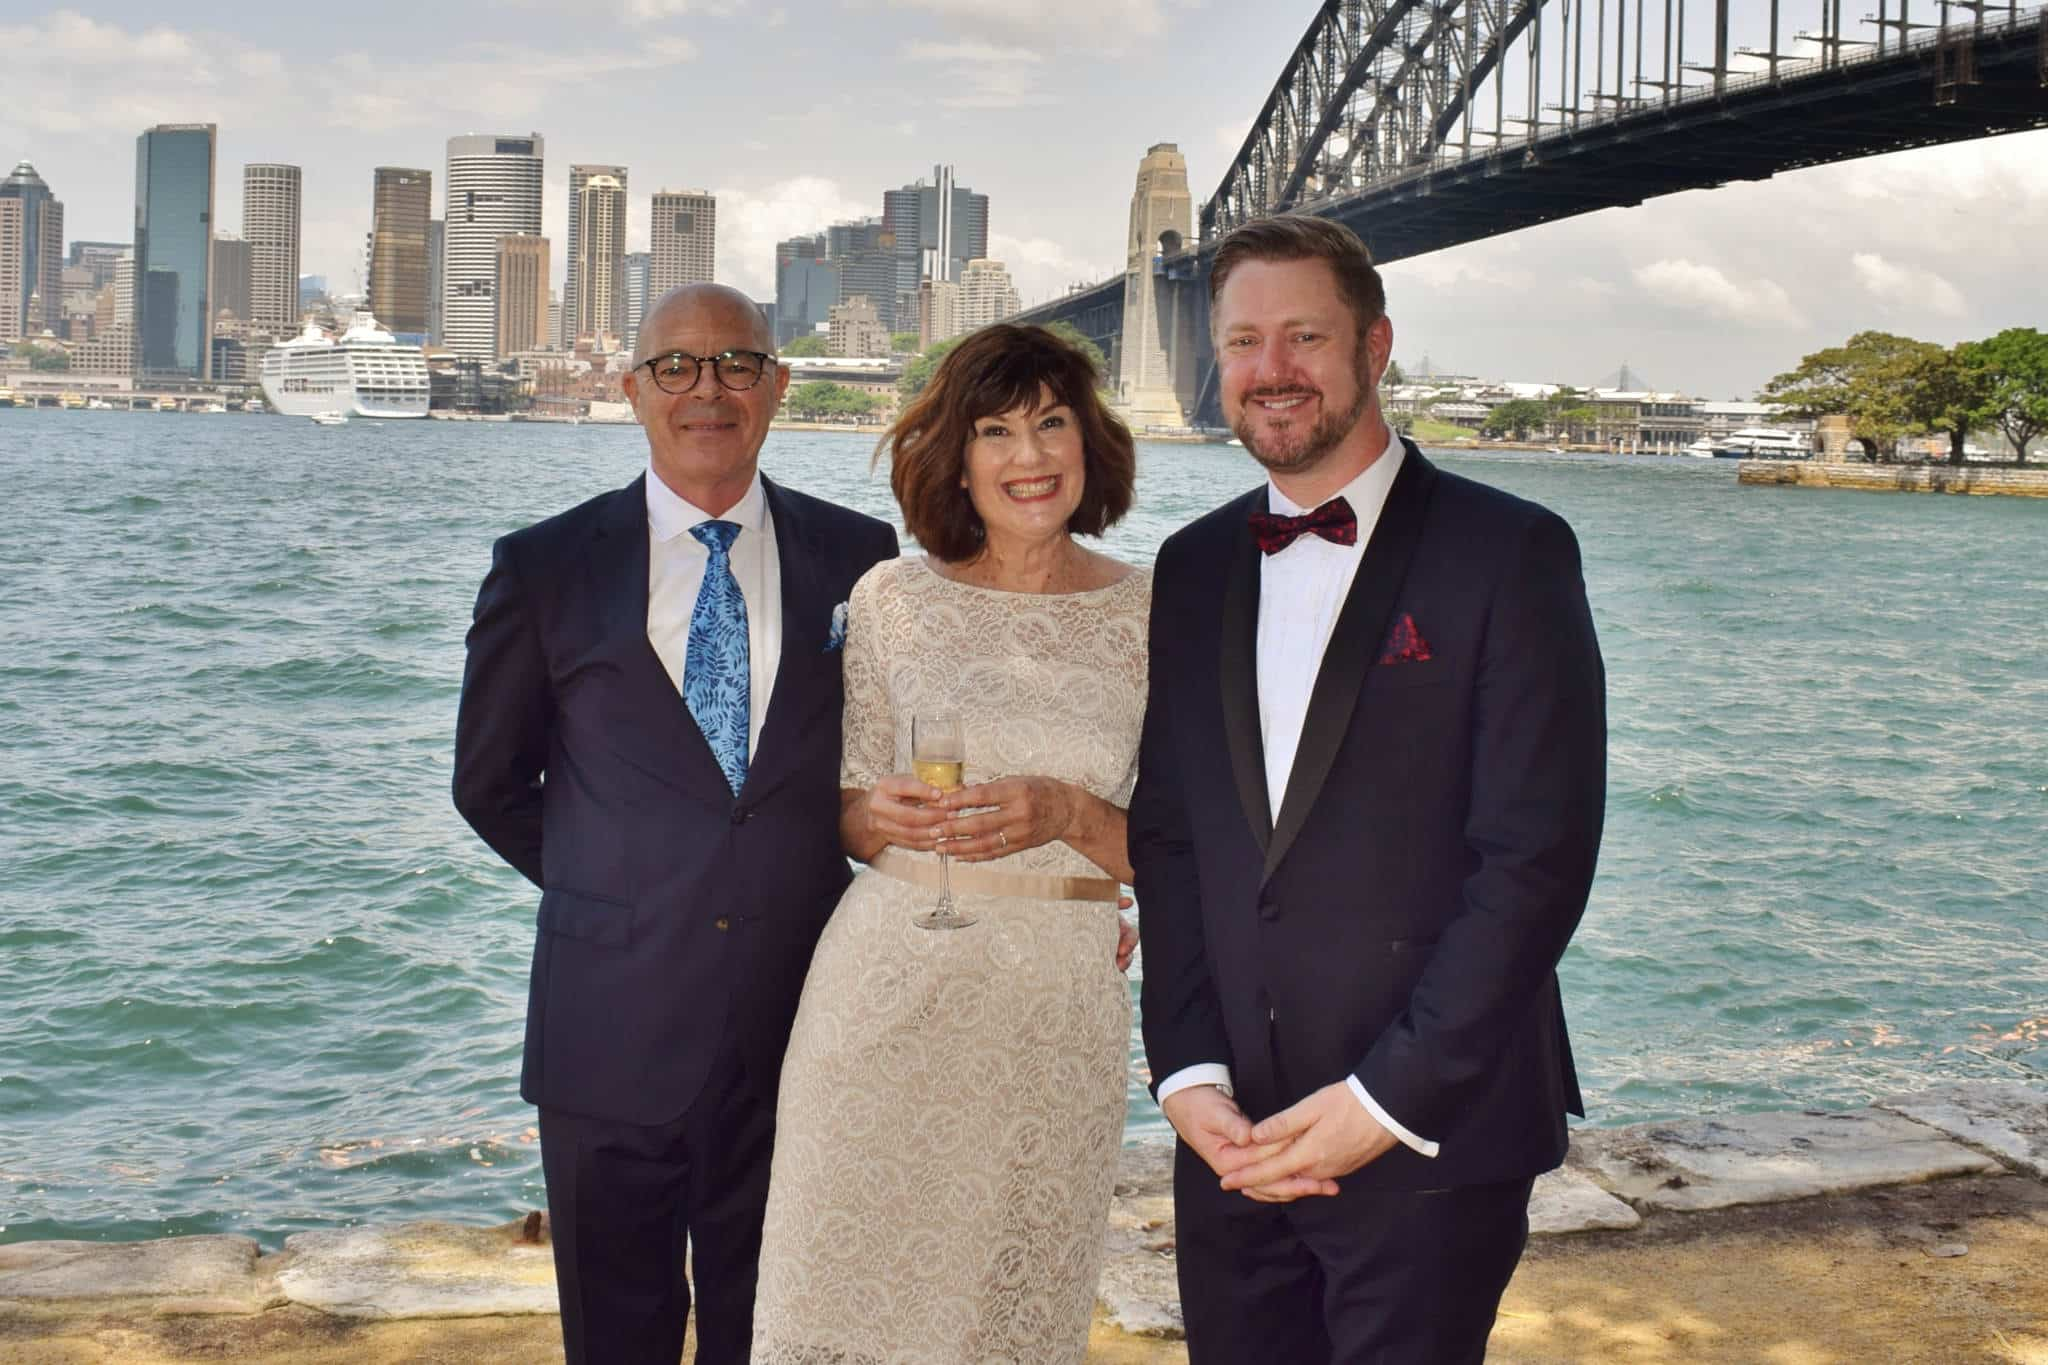 Simon and Liz Harbour Wedding - Stephen Lee Sydney Marriage Celebrant